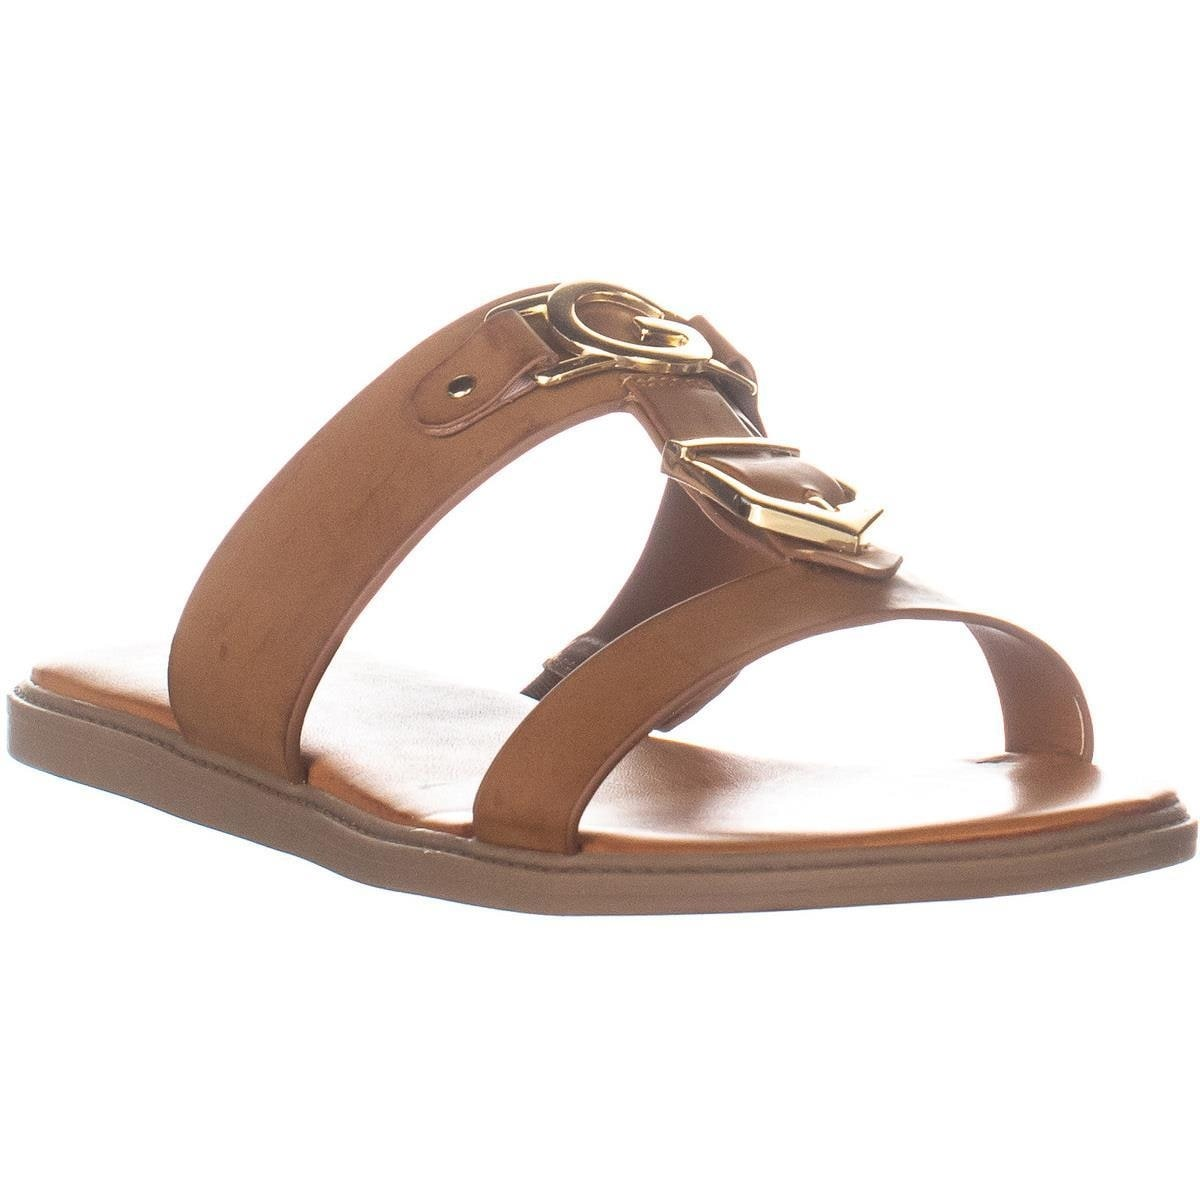 Buy Online Guess Women's Best OverstockOur Sale At Sandals N8nX0wOPZk